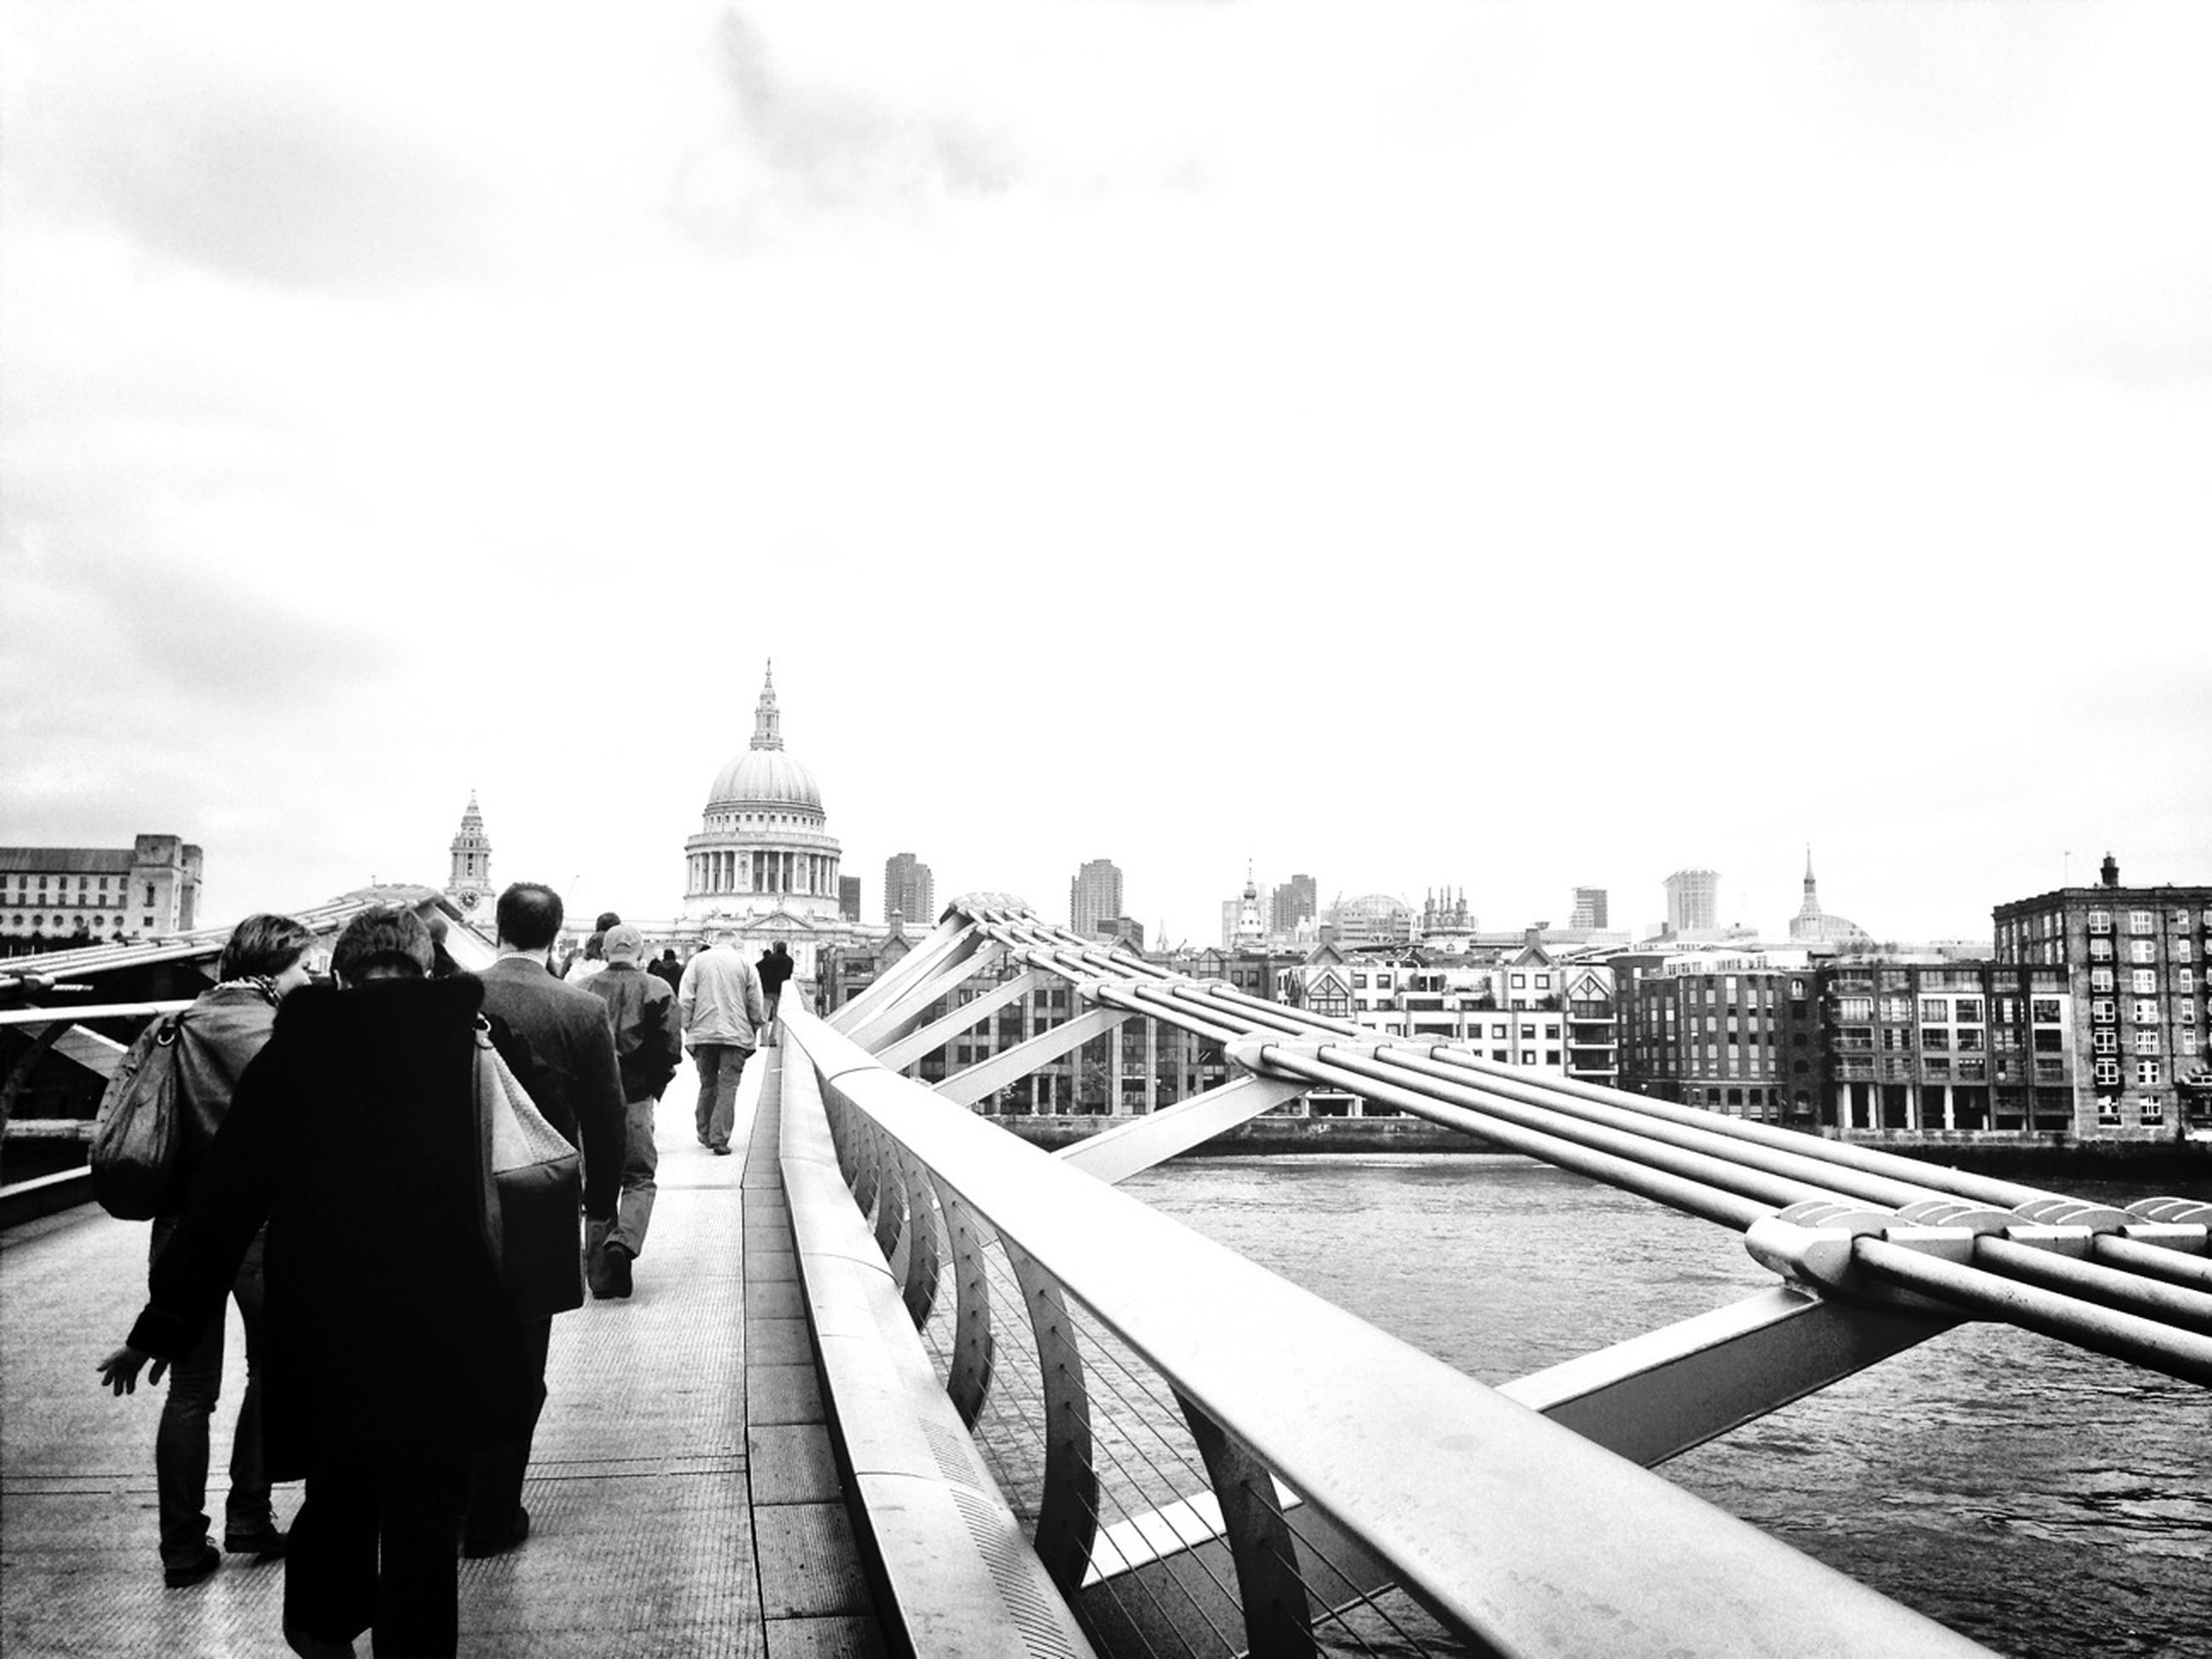 architecture, built structure, building exterior, men, city, walking, person, lifestyles, rear view, city life, railing, clear sky, sky, leisure activity, bridge - man made structure, large group of people, travel destinations, travel, copy space